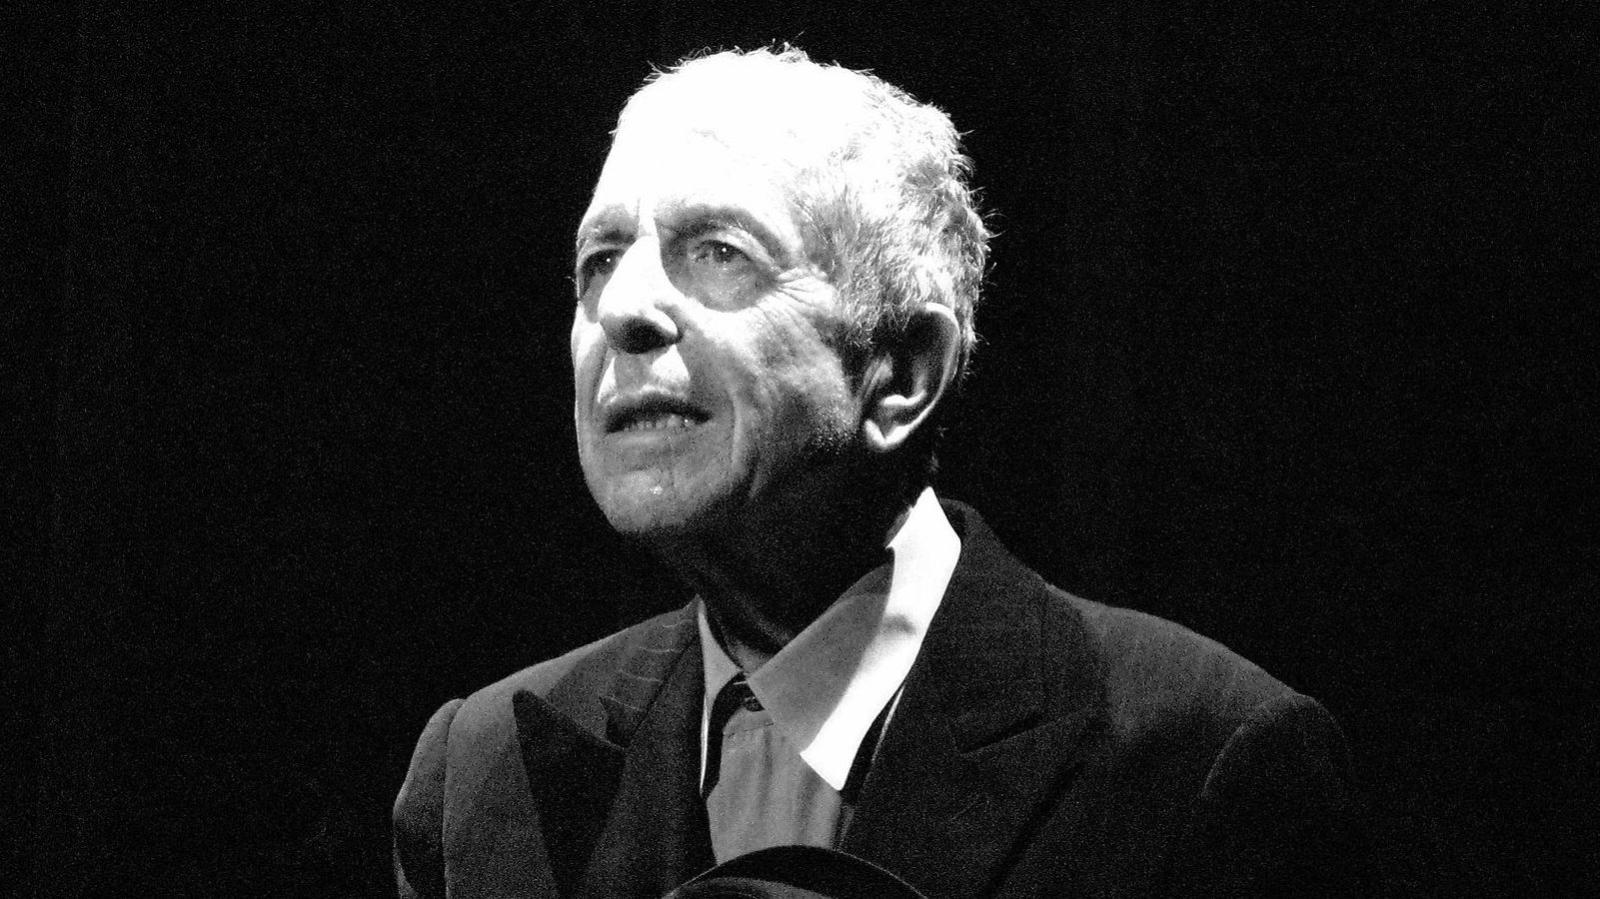 Posthumous Leonard Cohen collection on the way